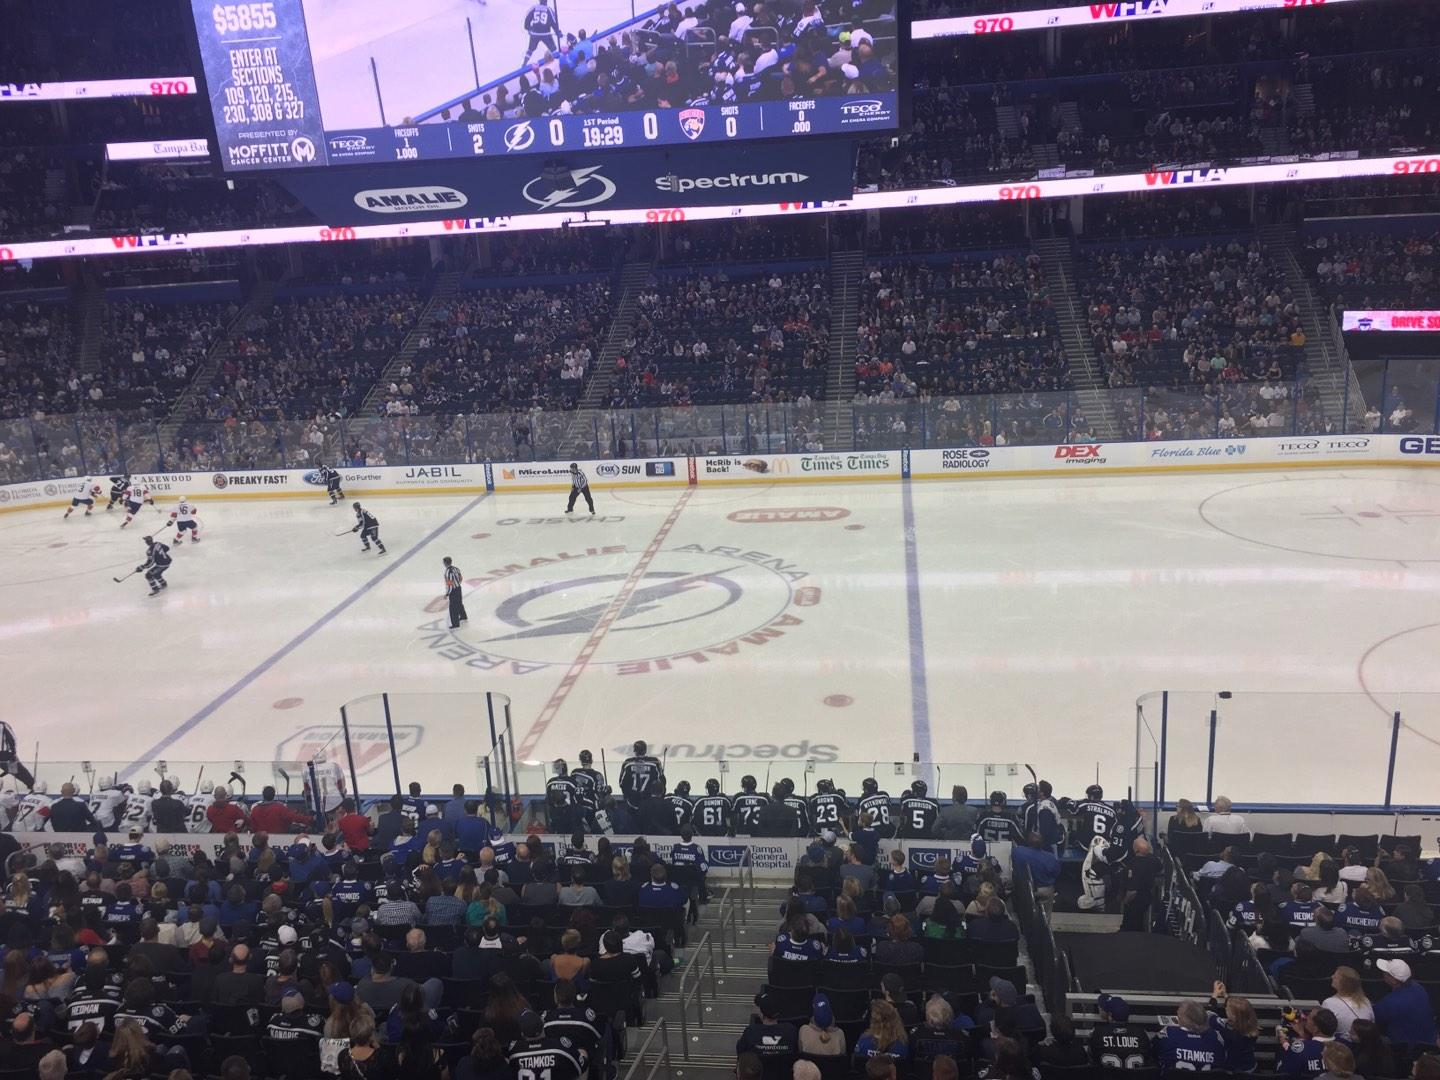 Amalie Arena Section 230 Row A Seat 13